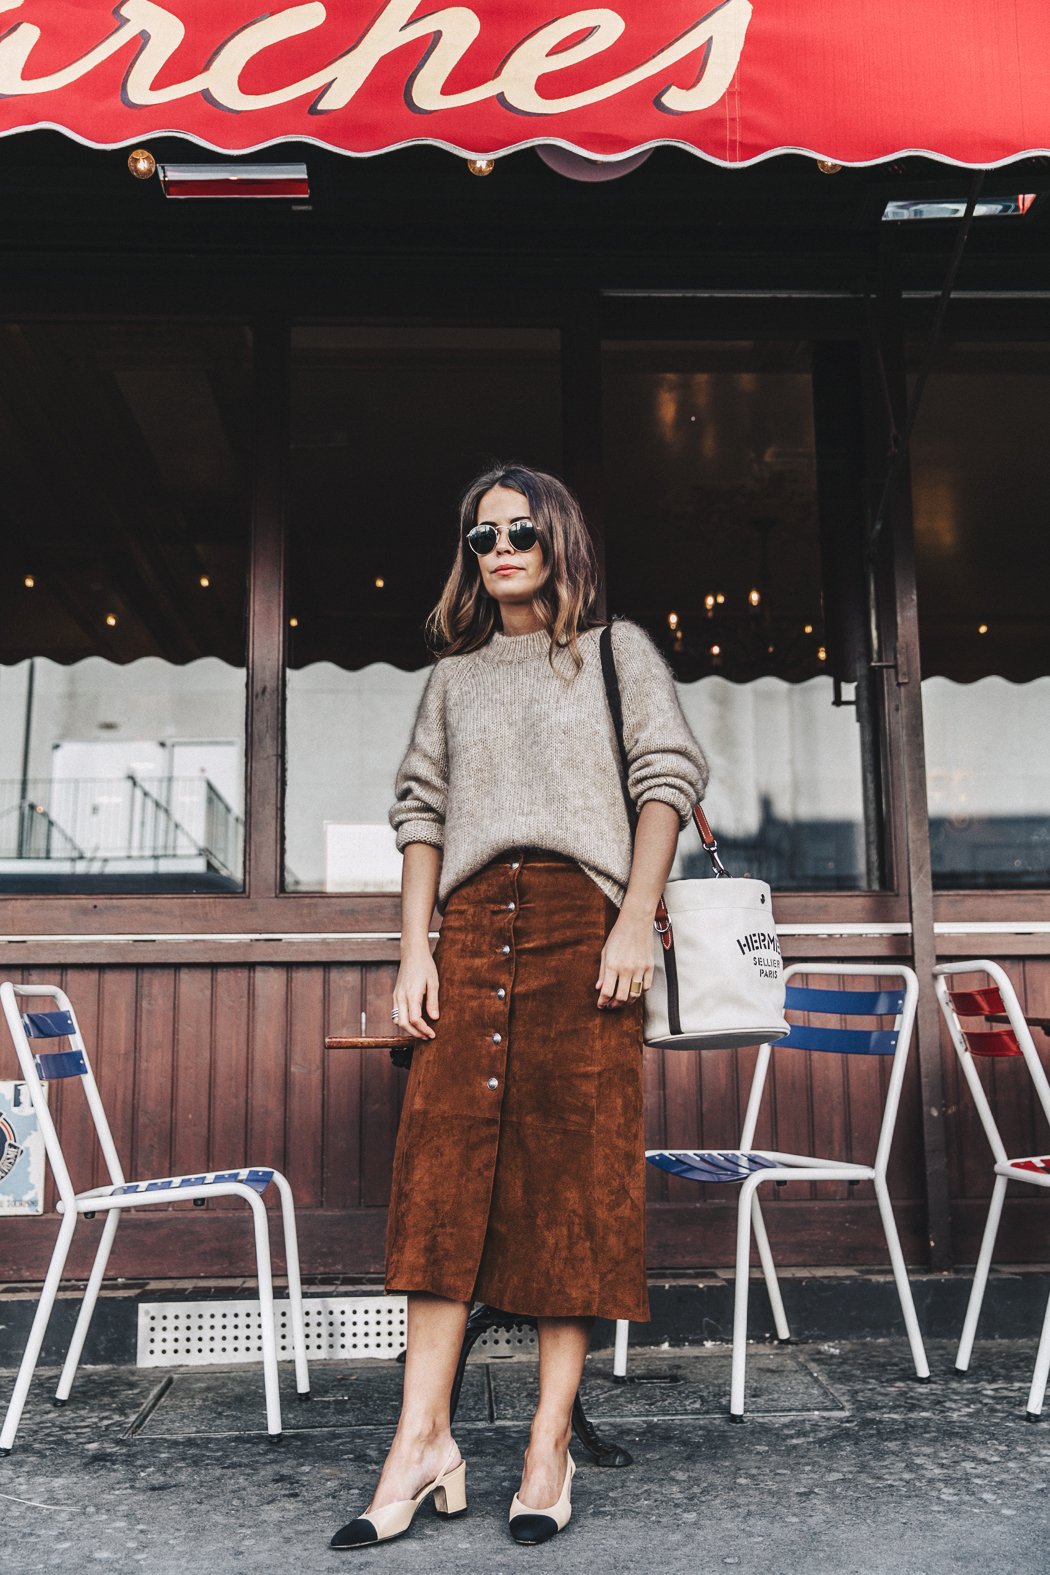 Vestiaire_Collective-Suede_Skirt-MIdi_Skirt-Hermes_Canvas_Bag-Chanel_Slingbacks-Outfit-Street_Style-15